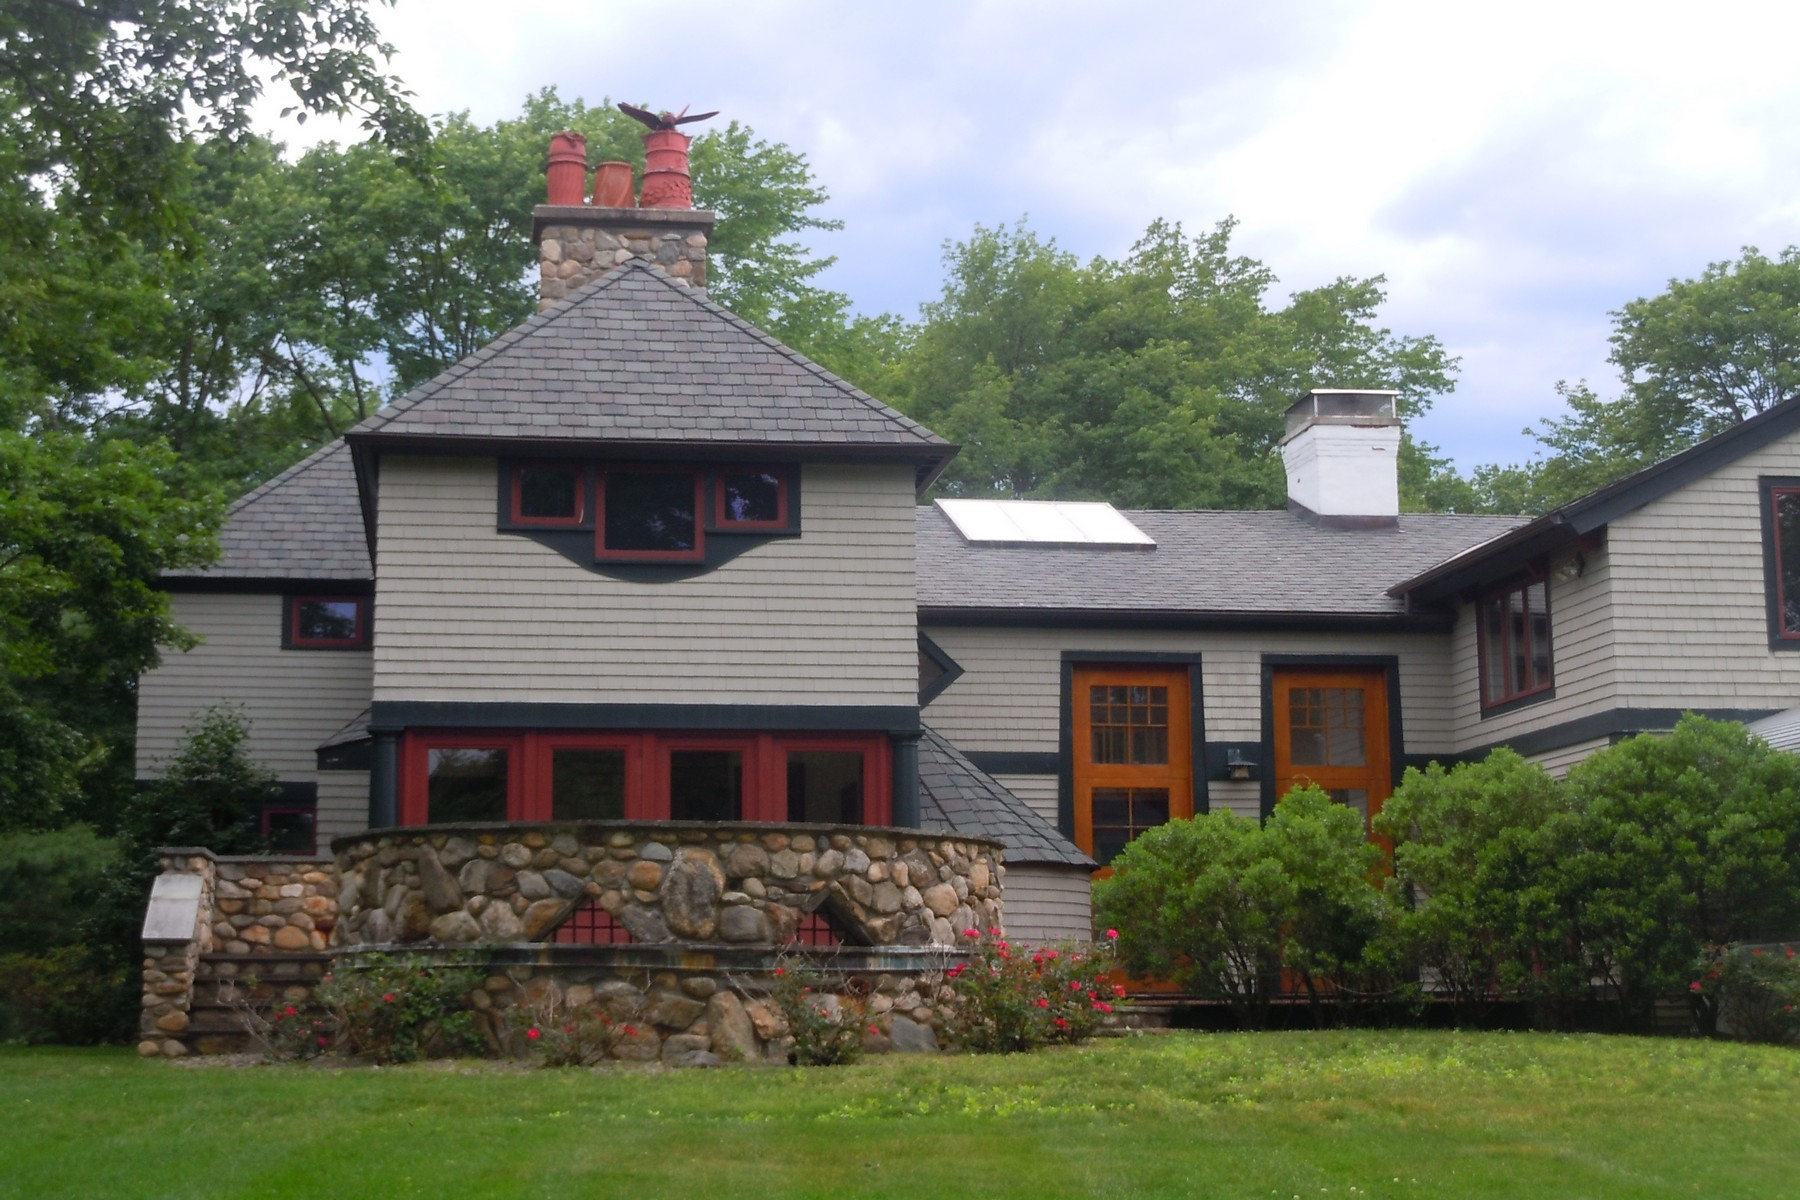 Casa Unifamiliar por un Venta en Exquisite Estate 240 Main Street Boxford, Massachusetts 01921 Estados Unidos